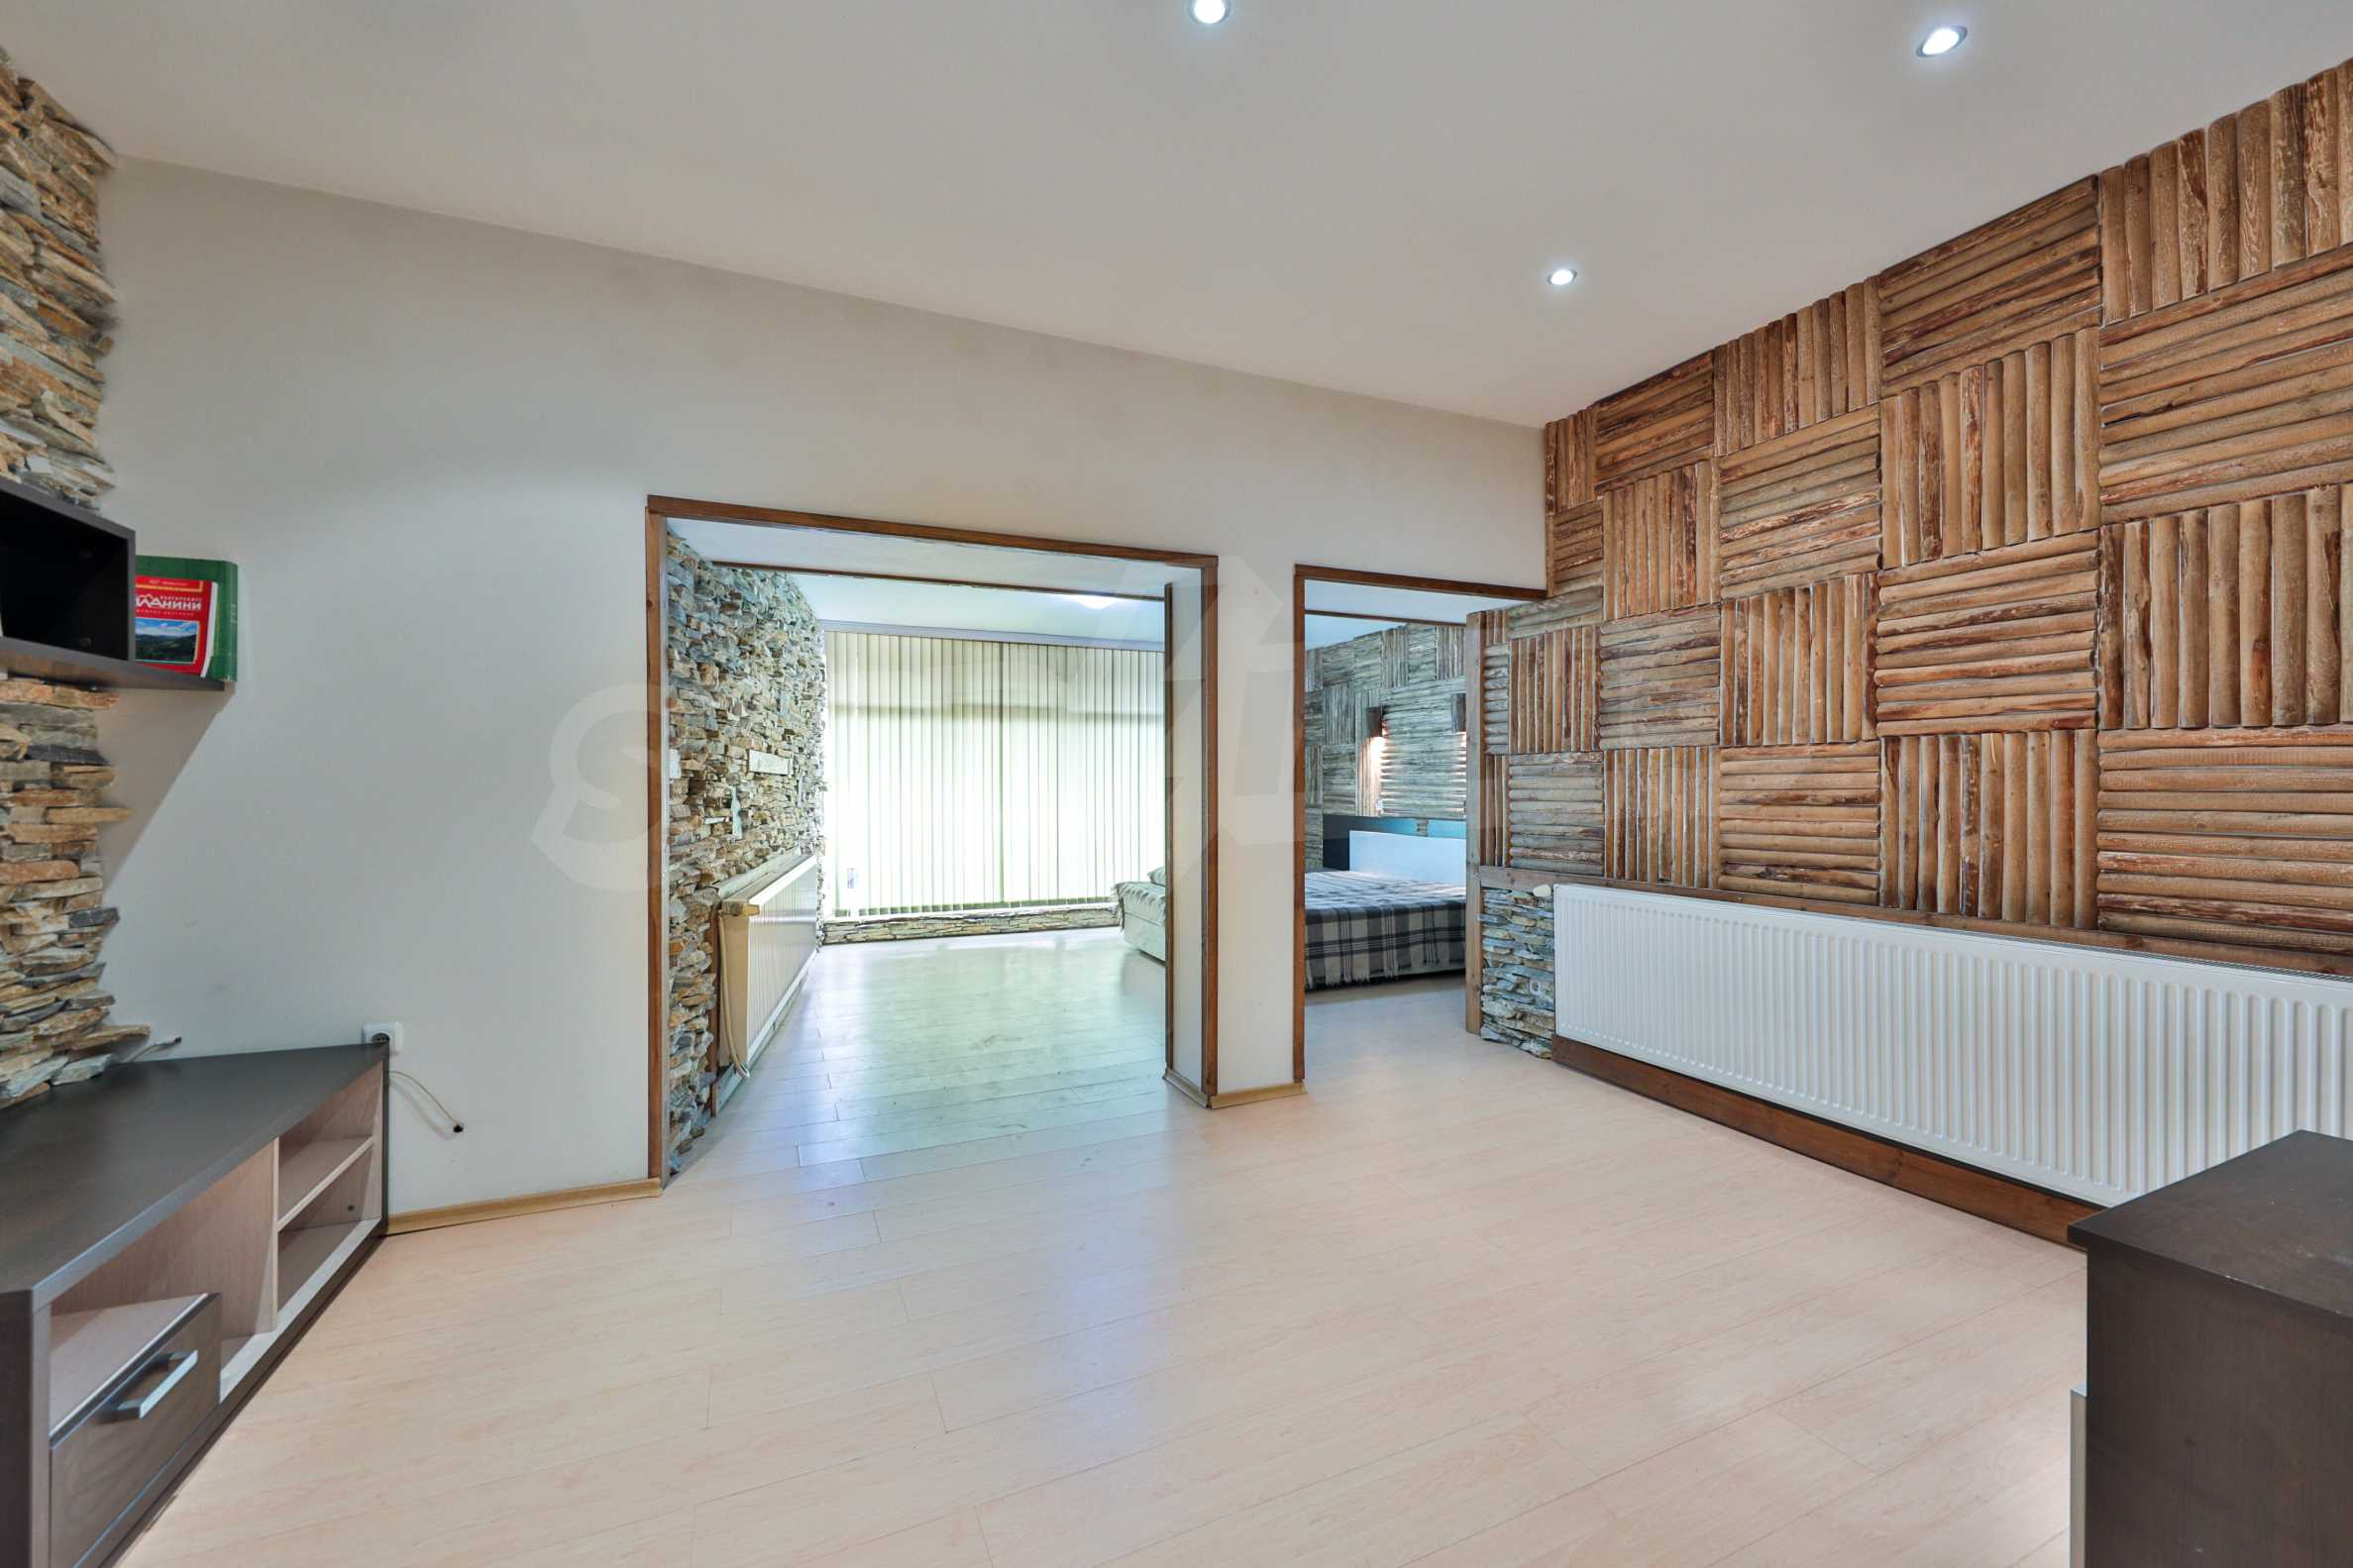 Pirin Apartments: Superb location right in the centre of Bansko 15